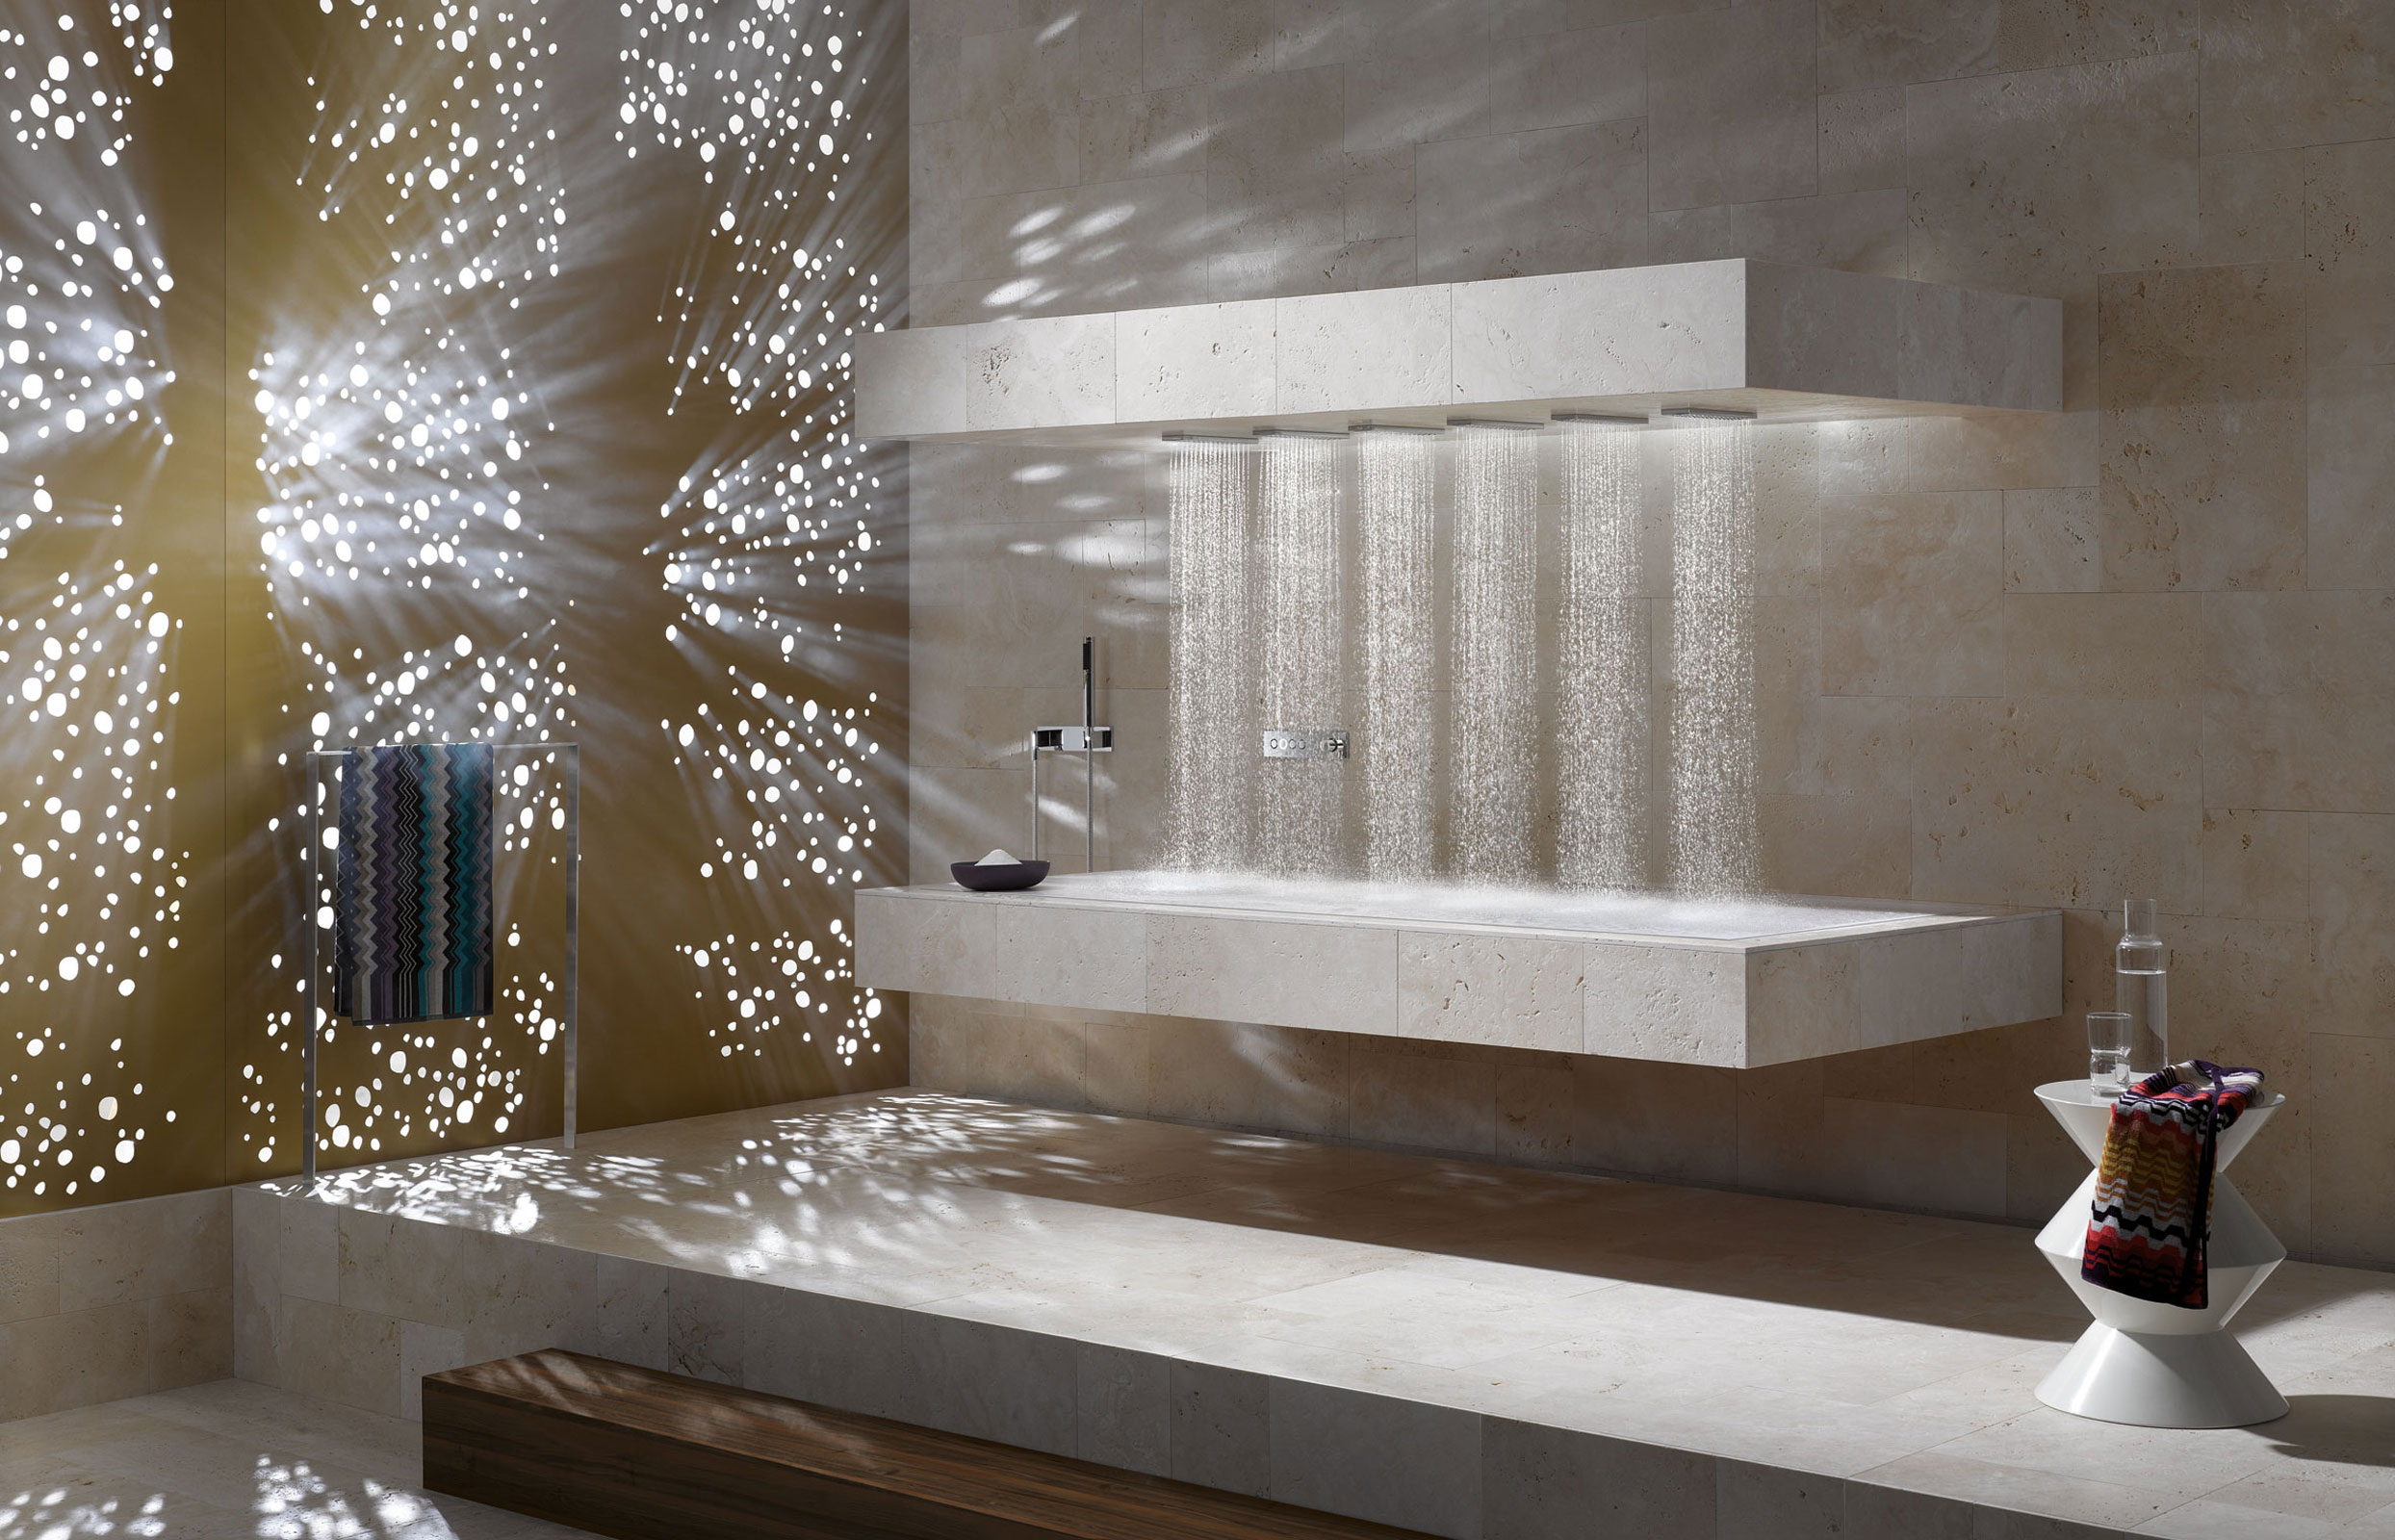 Horizontal shower by dornbracht will rejuvenate your body for Salle de bain avec jacuzzi